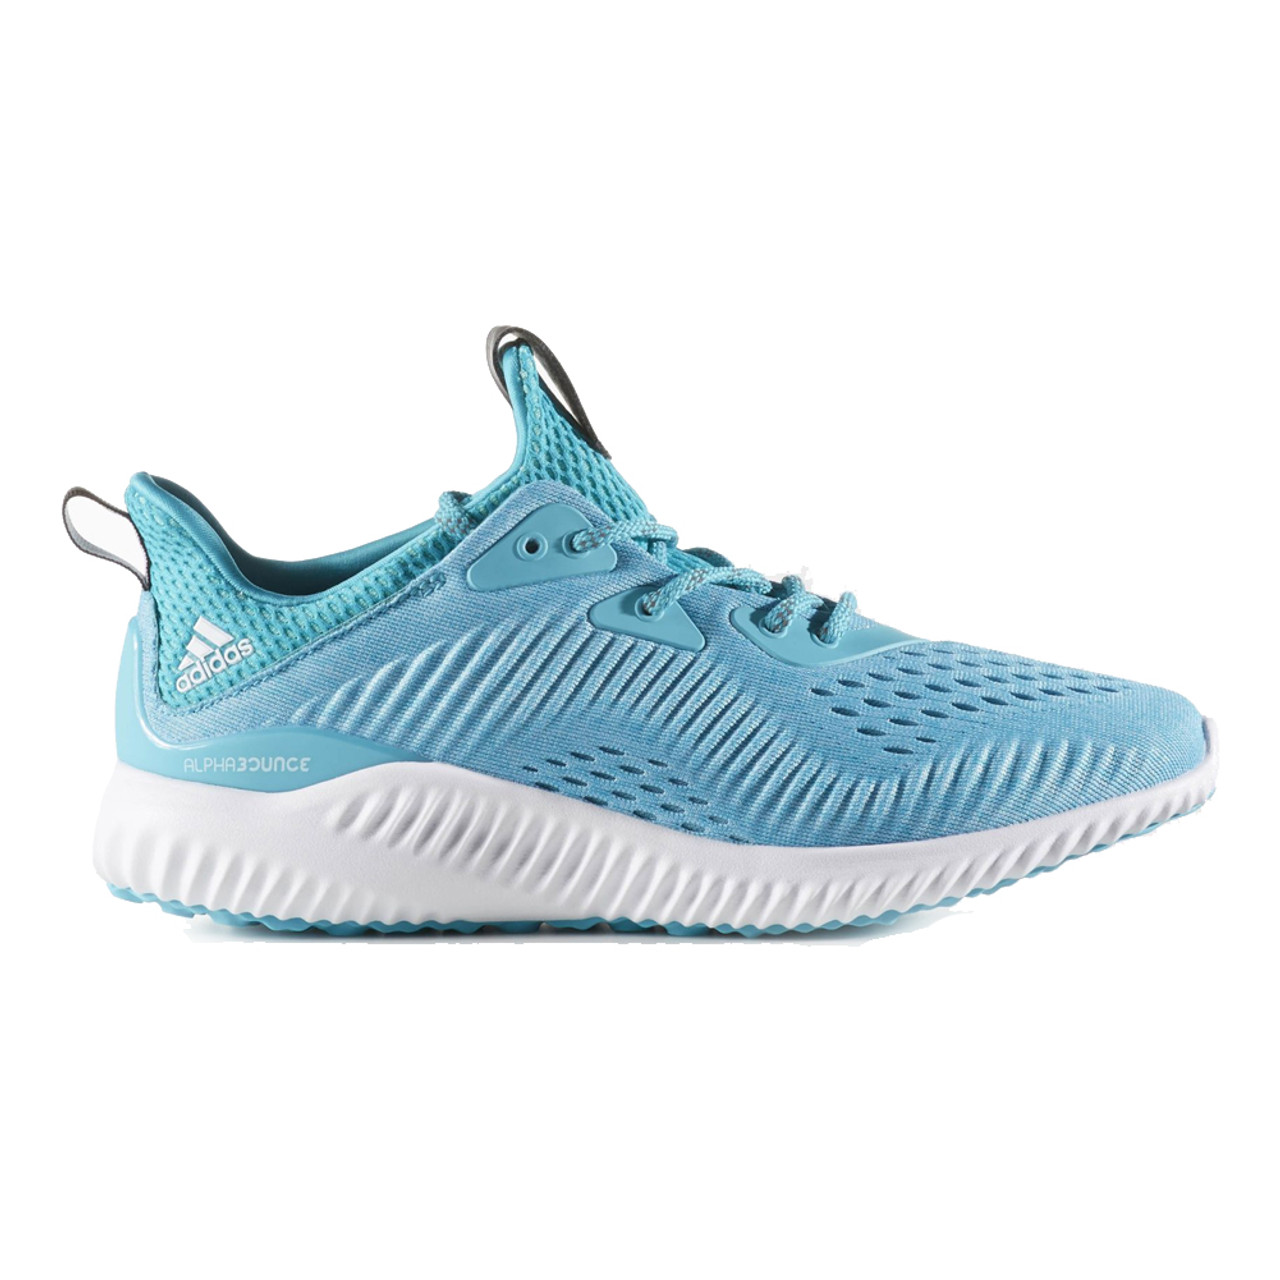 495d1940b Adidas Women s Alphabounce EM Running Shoe Blue White Clear Aqua - Shop now